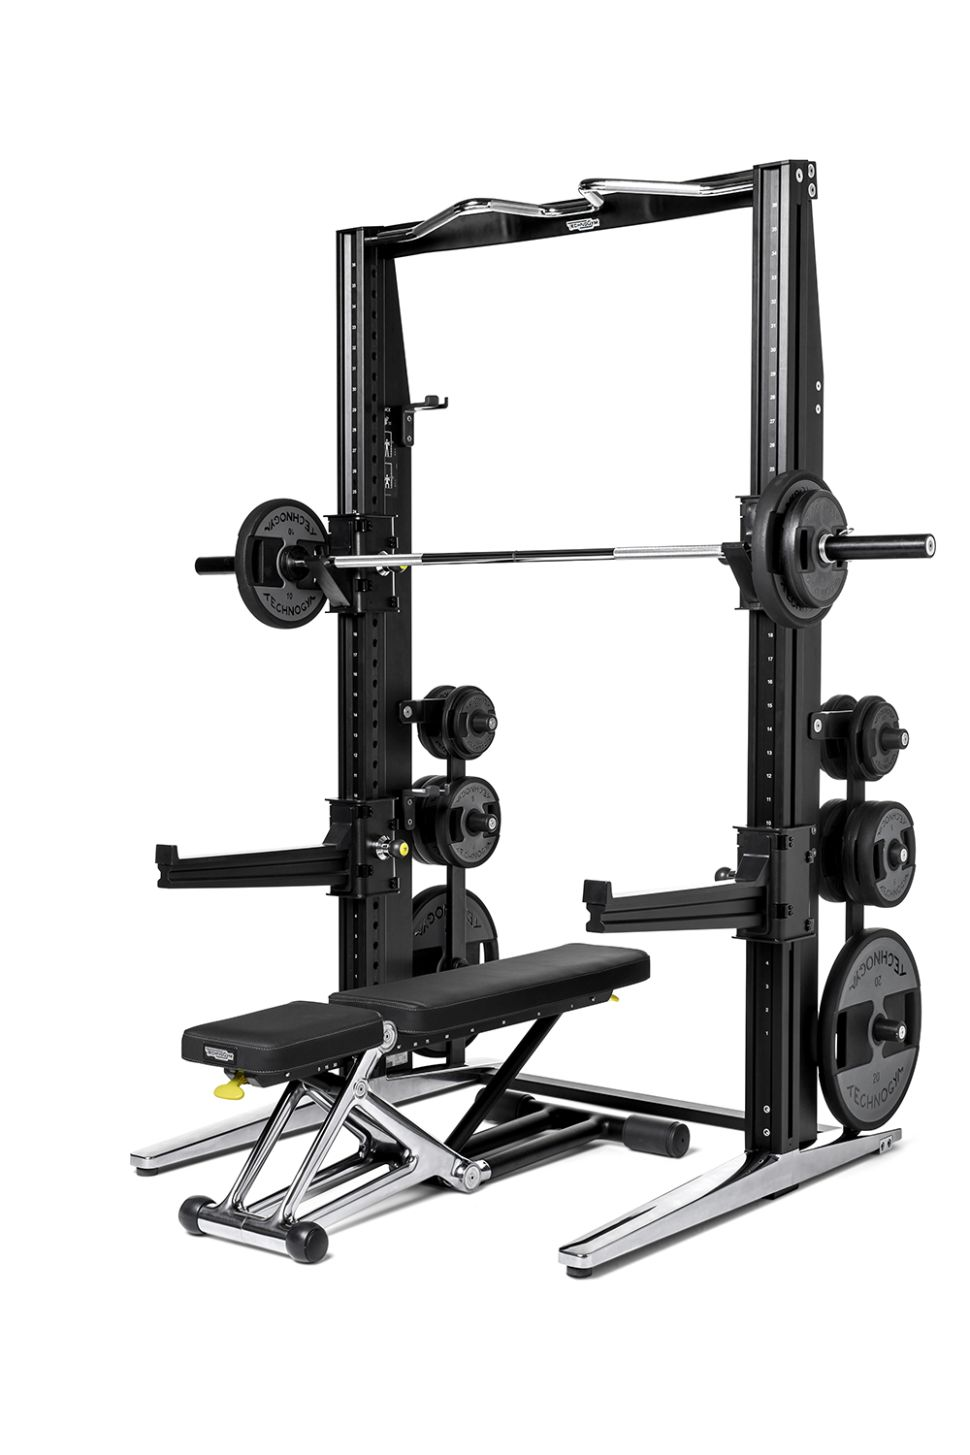 Get Technical With This $11,000 Home Gym